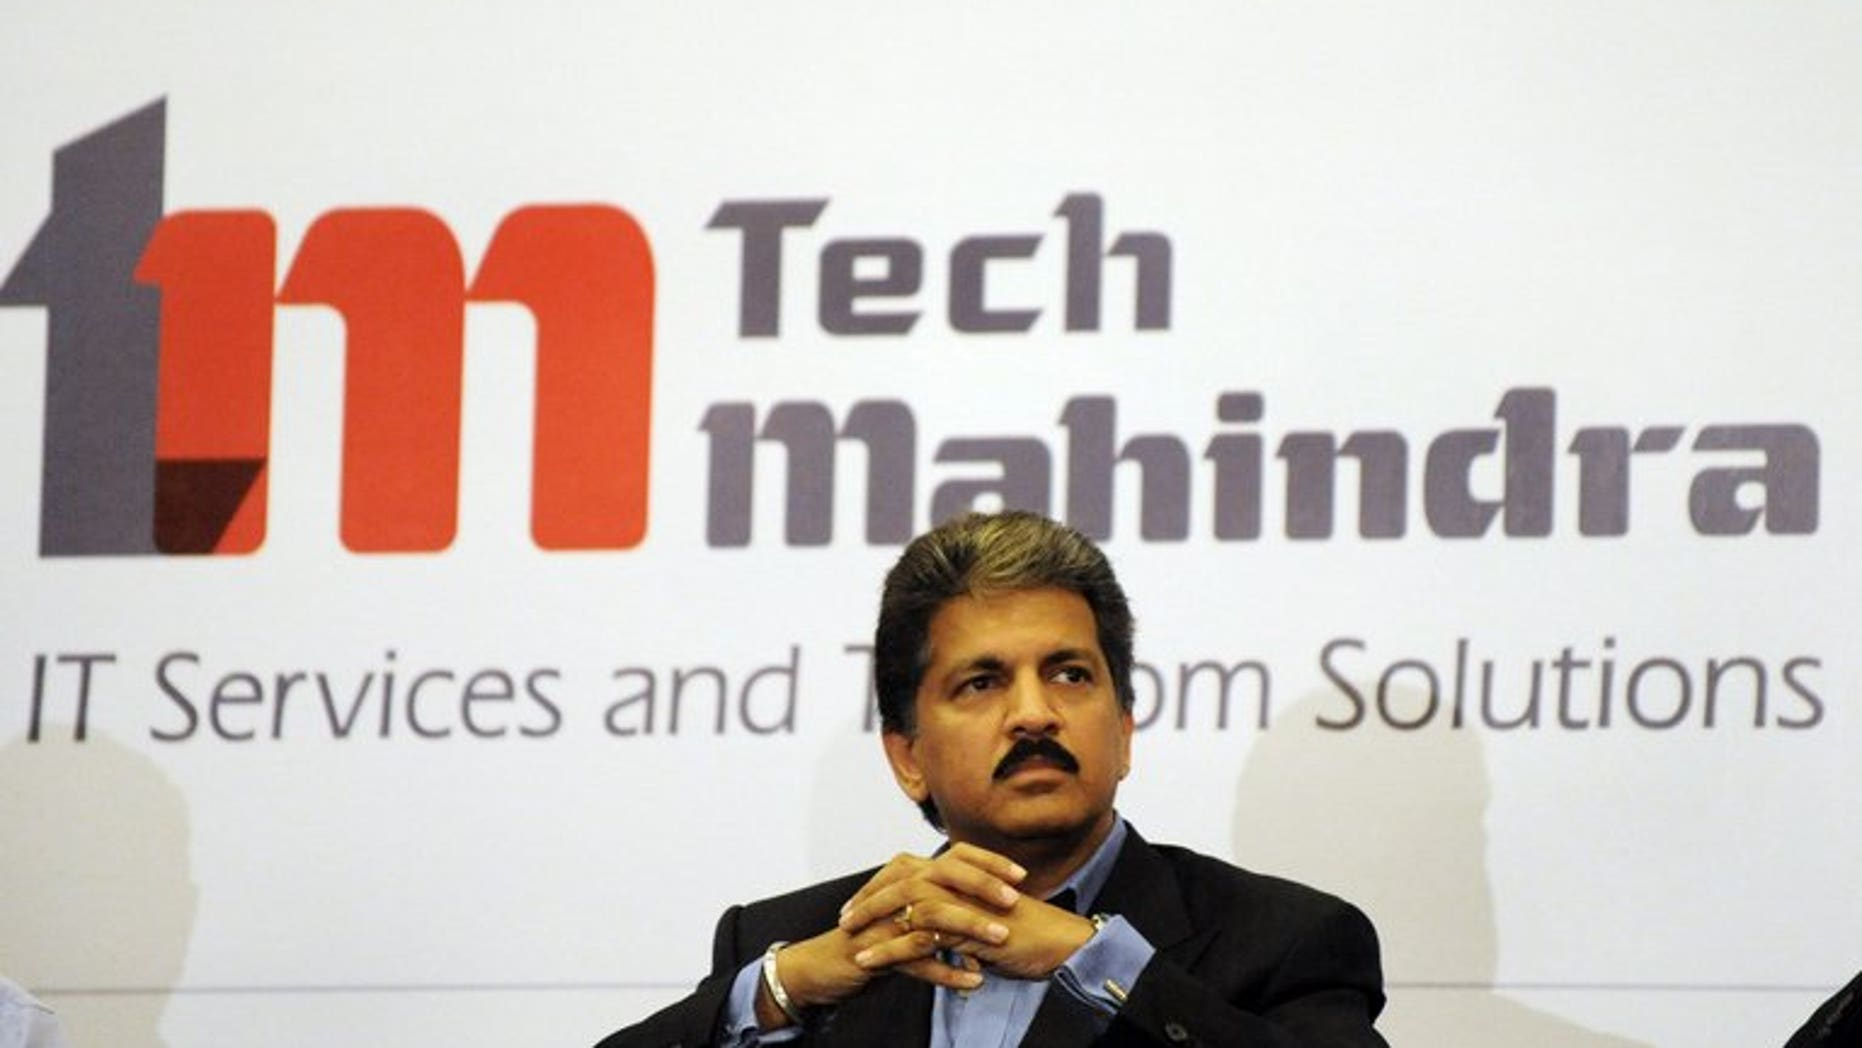 Anand Mahindra listens to a question during a press conference in Hyderabad on April 20, 2009. Indian IT outsourcer Tech Mahindra on Tuesday completed a takeover of its partly-owned unit Mahindra Satyam, creating a new force in the sector with annual revenues of $2.7 billion.